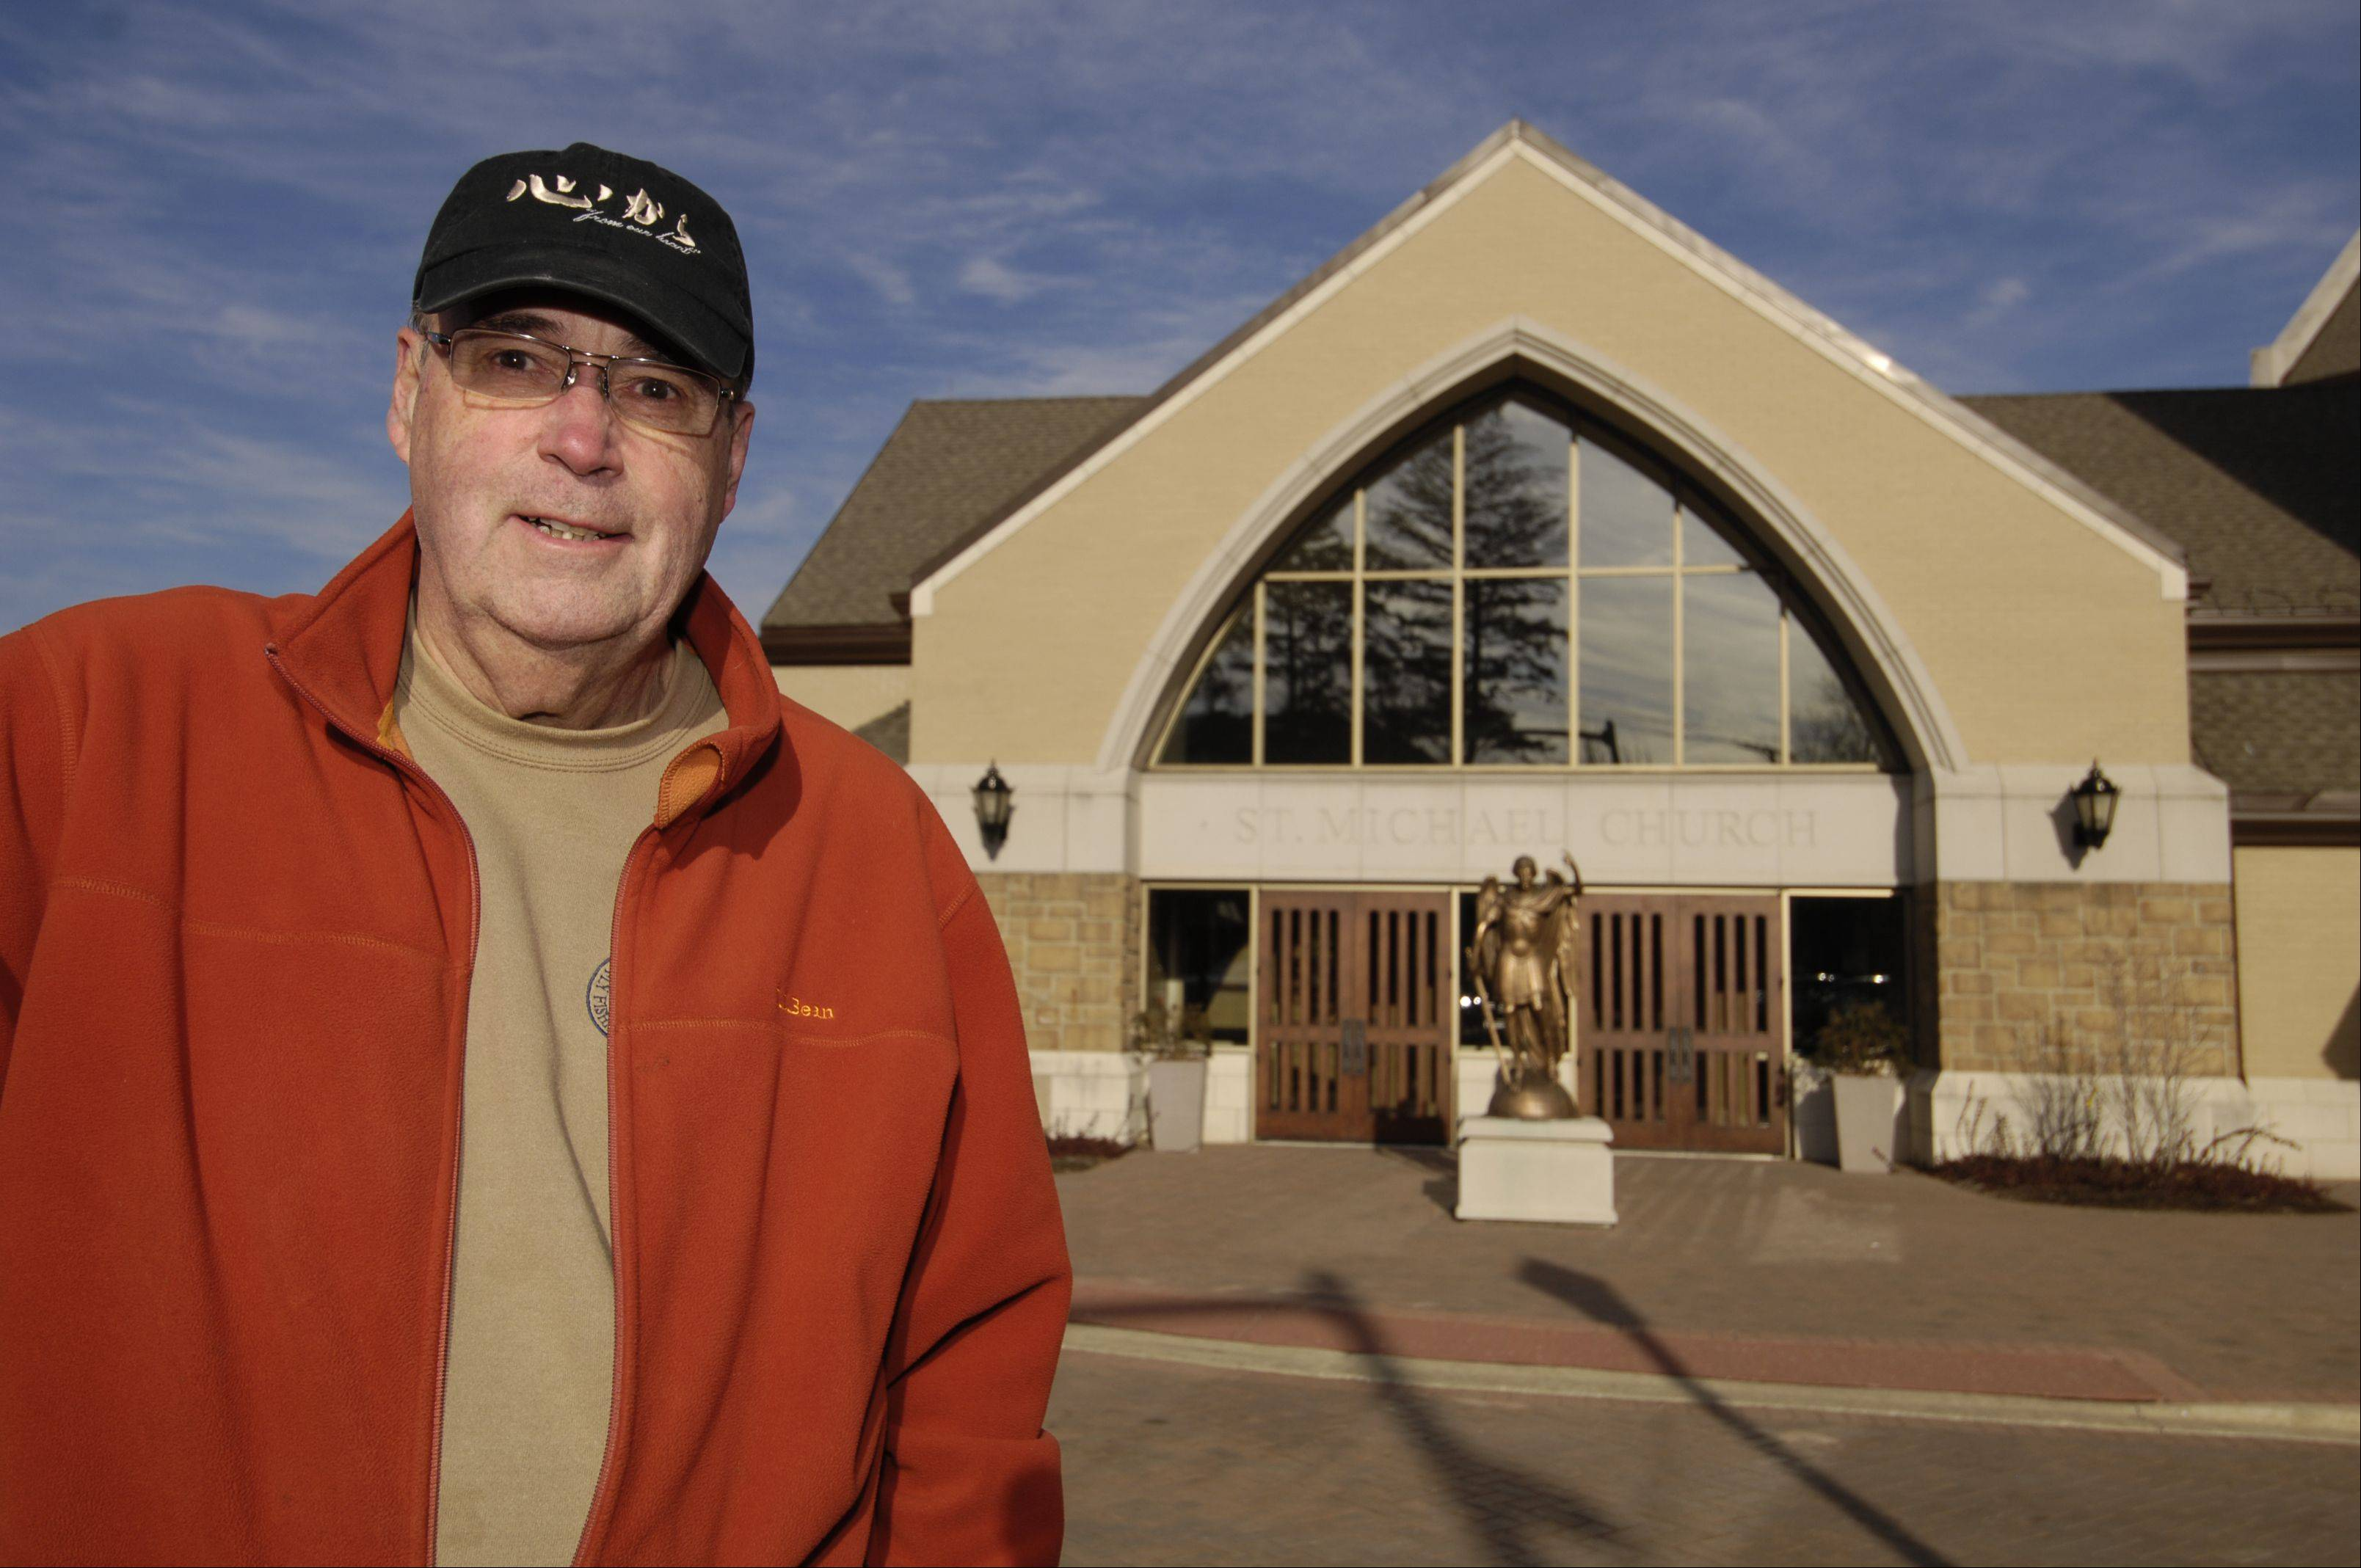 George Carr, a trustee with the Serra Club of DuPage County, stands in front of St. Michael Catholic Church in Wheaton, where he is a member and helps promote the club's mission to encourage people to consider religious vocations.